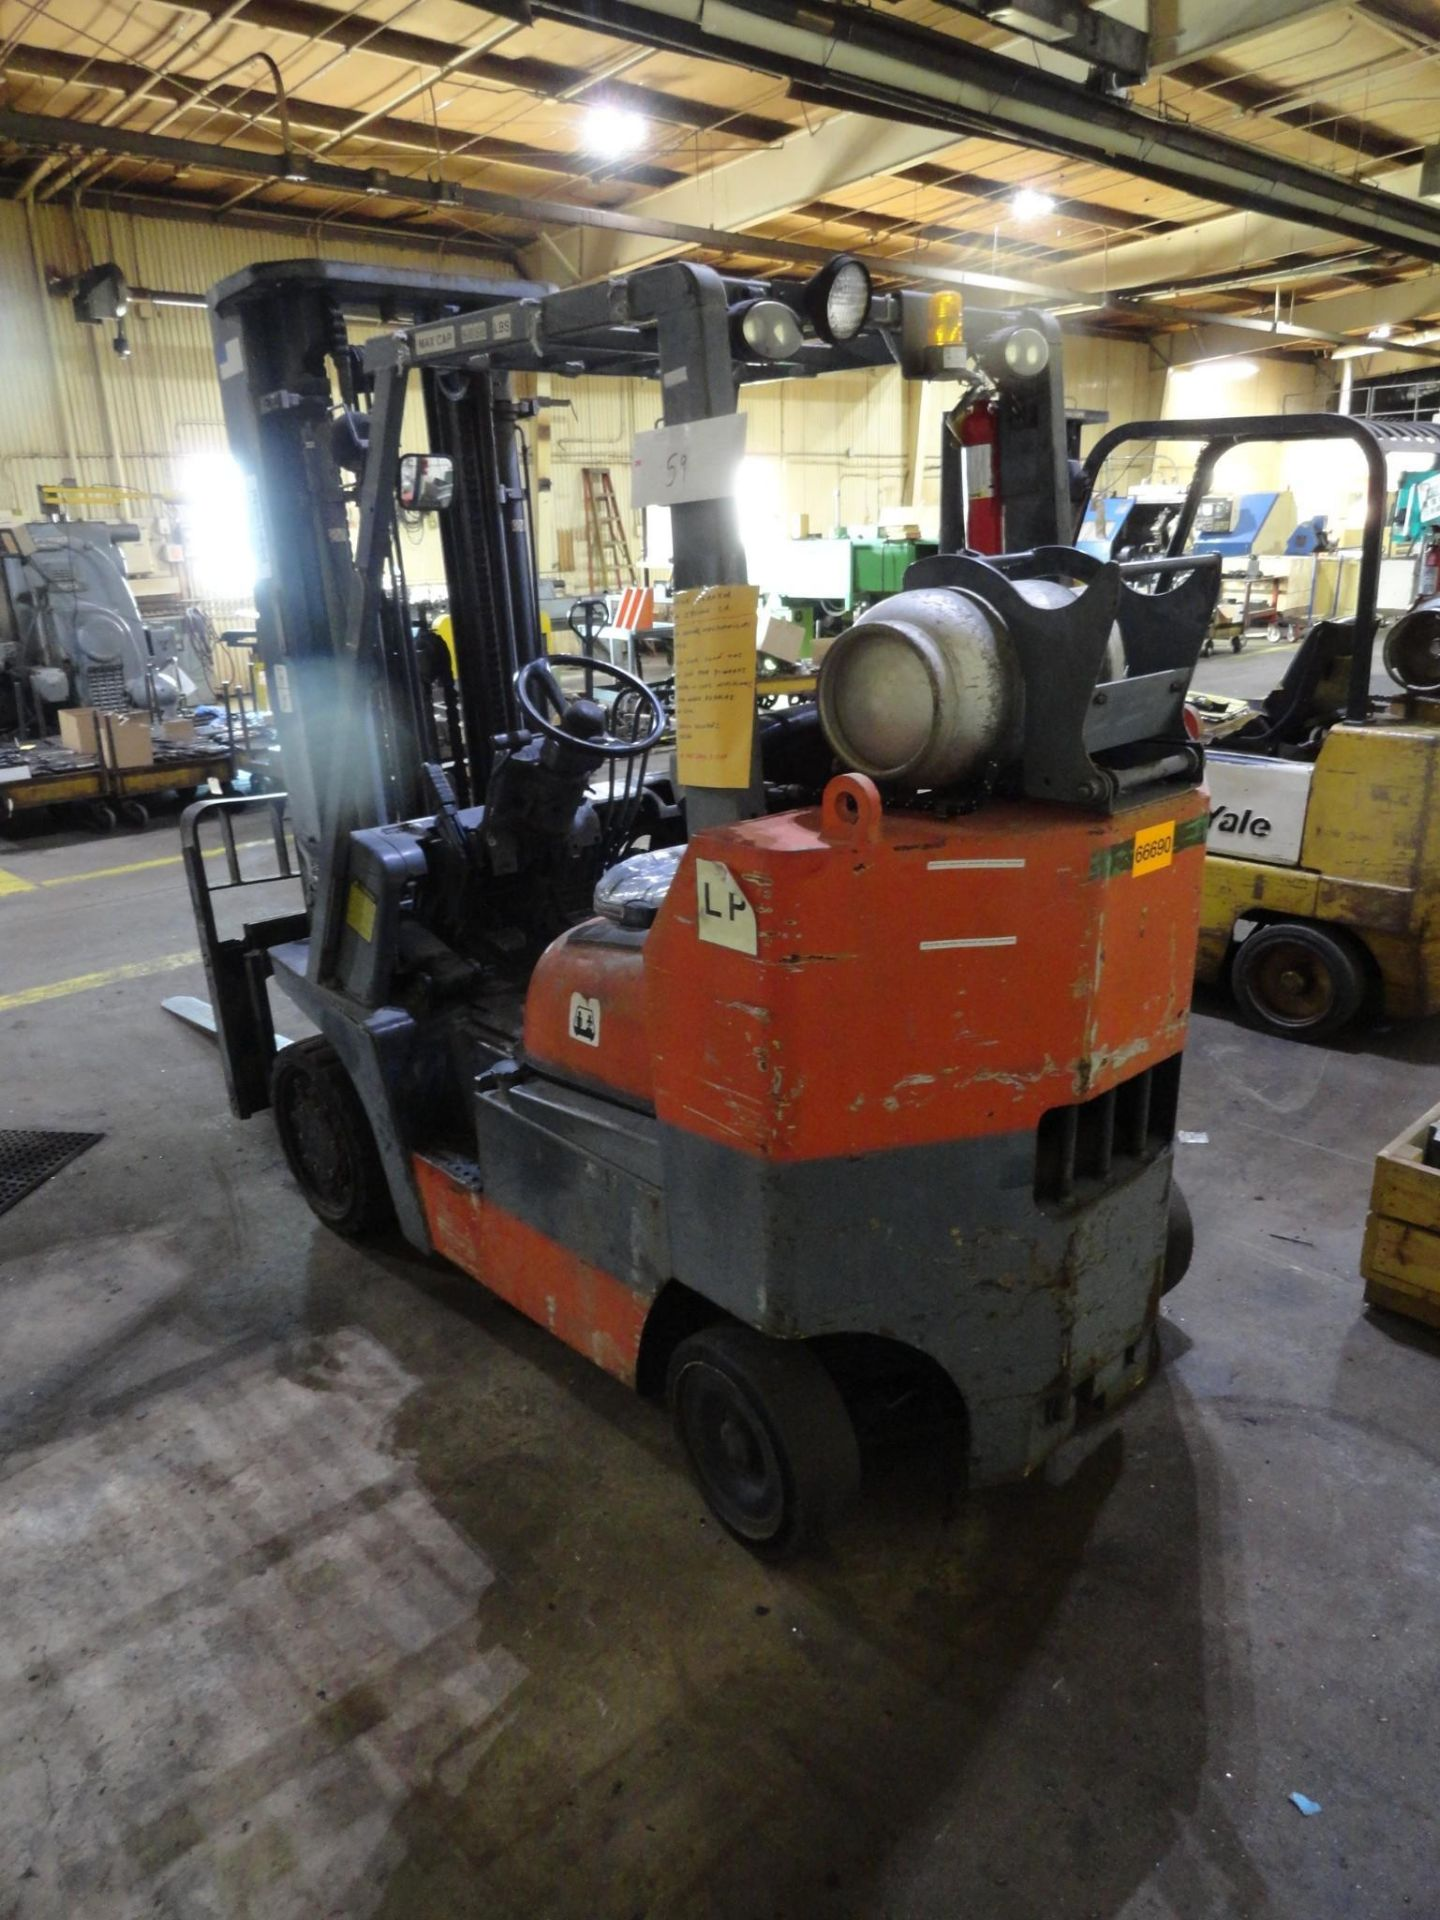 Toyota LP Forklift Truck Model 52-6FGCU35-BCS Serial 62181 6830 Lb Capacity 2-speed Forward and Reve - Image 3 of 18